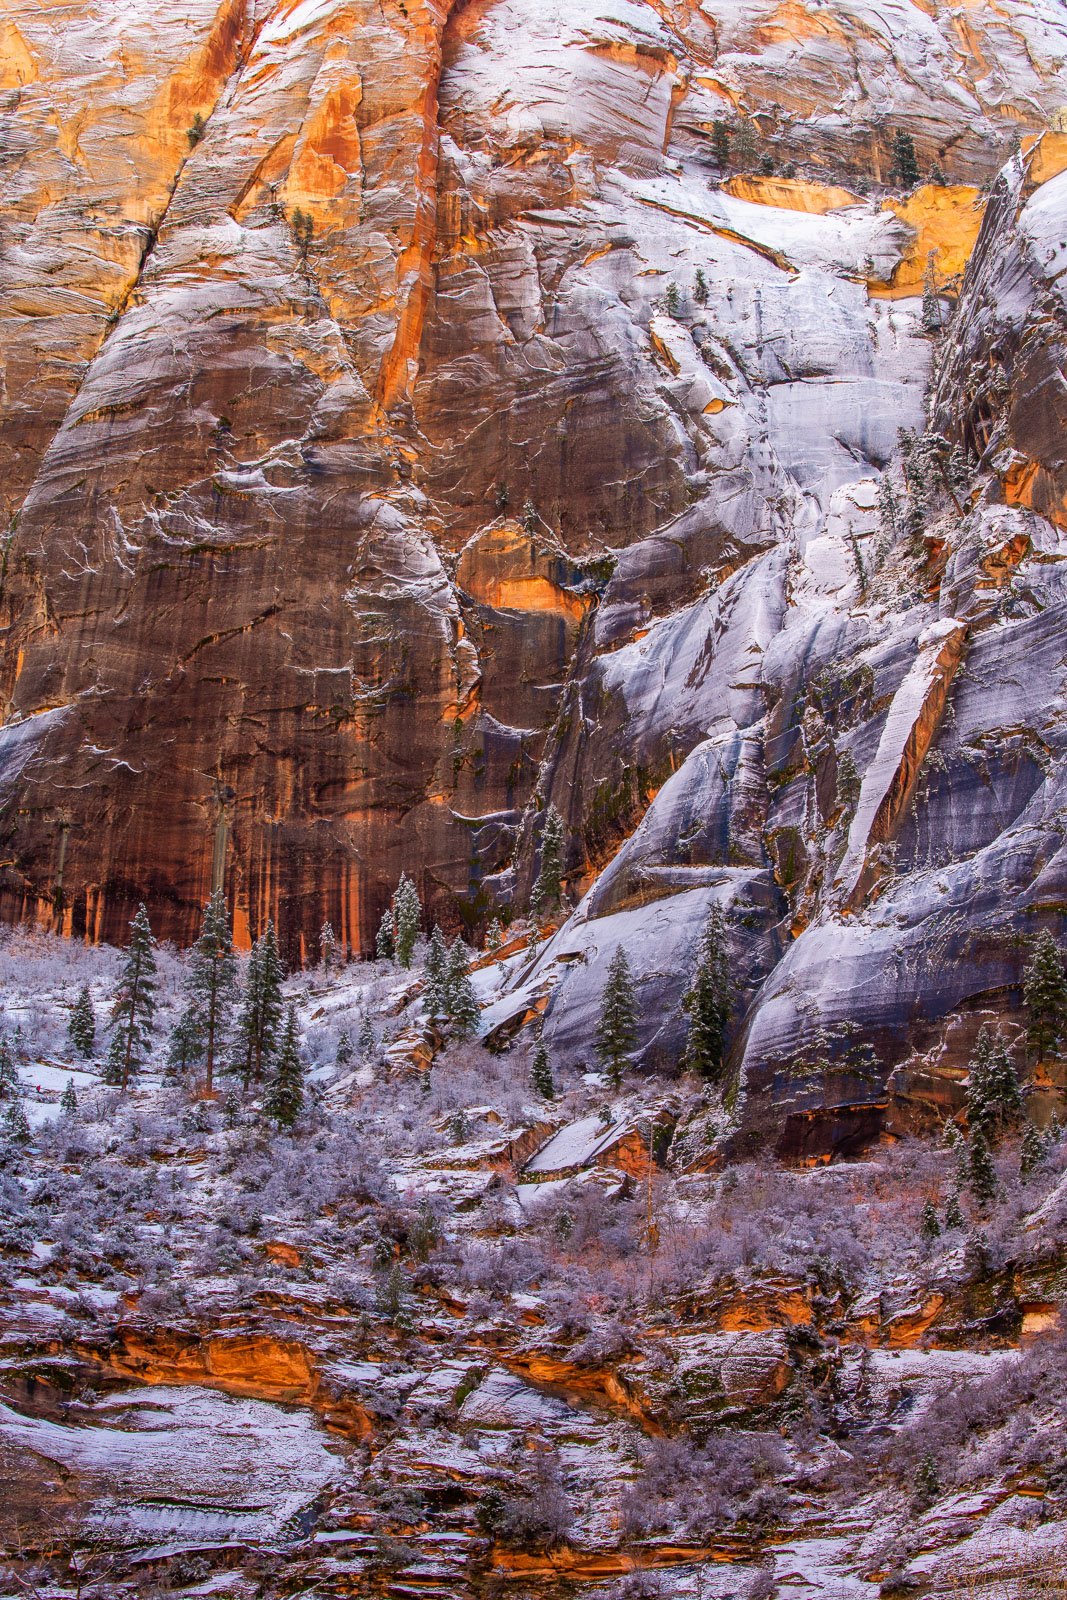 Snow blankets the walls of Echo Canyon after Zion's first winter snowfall of 2019.